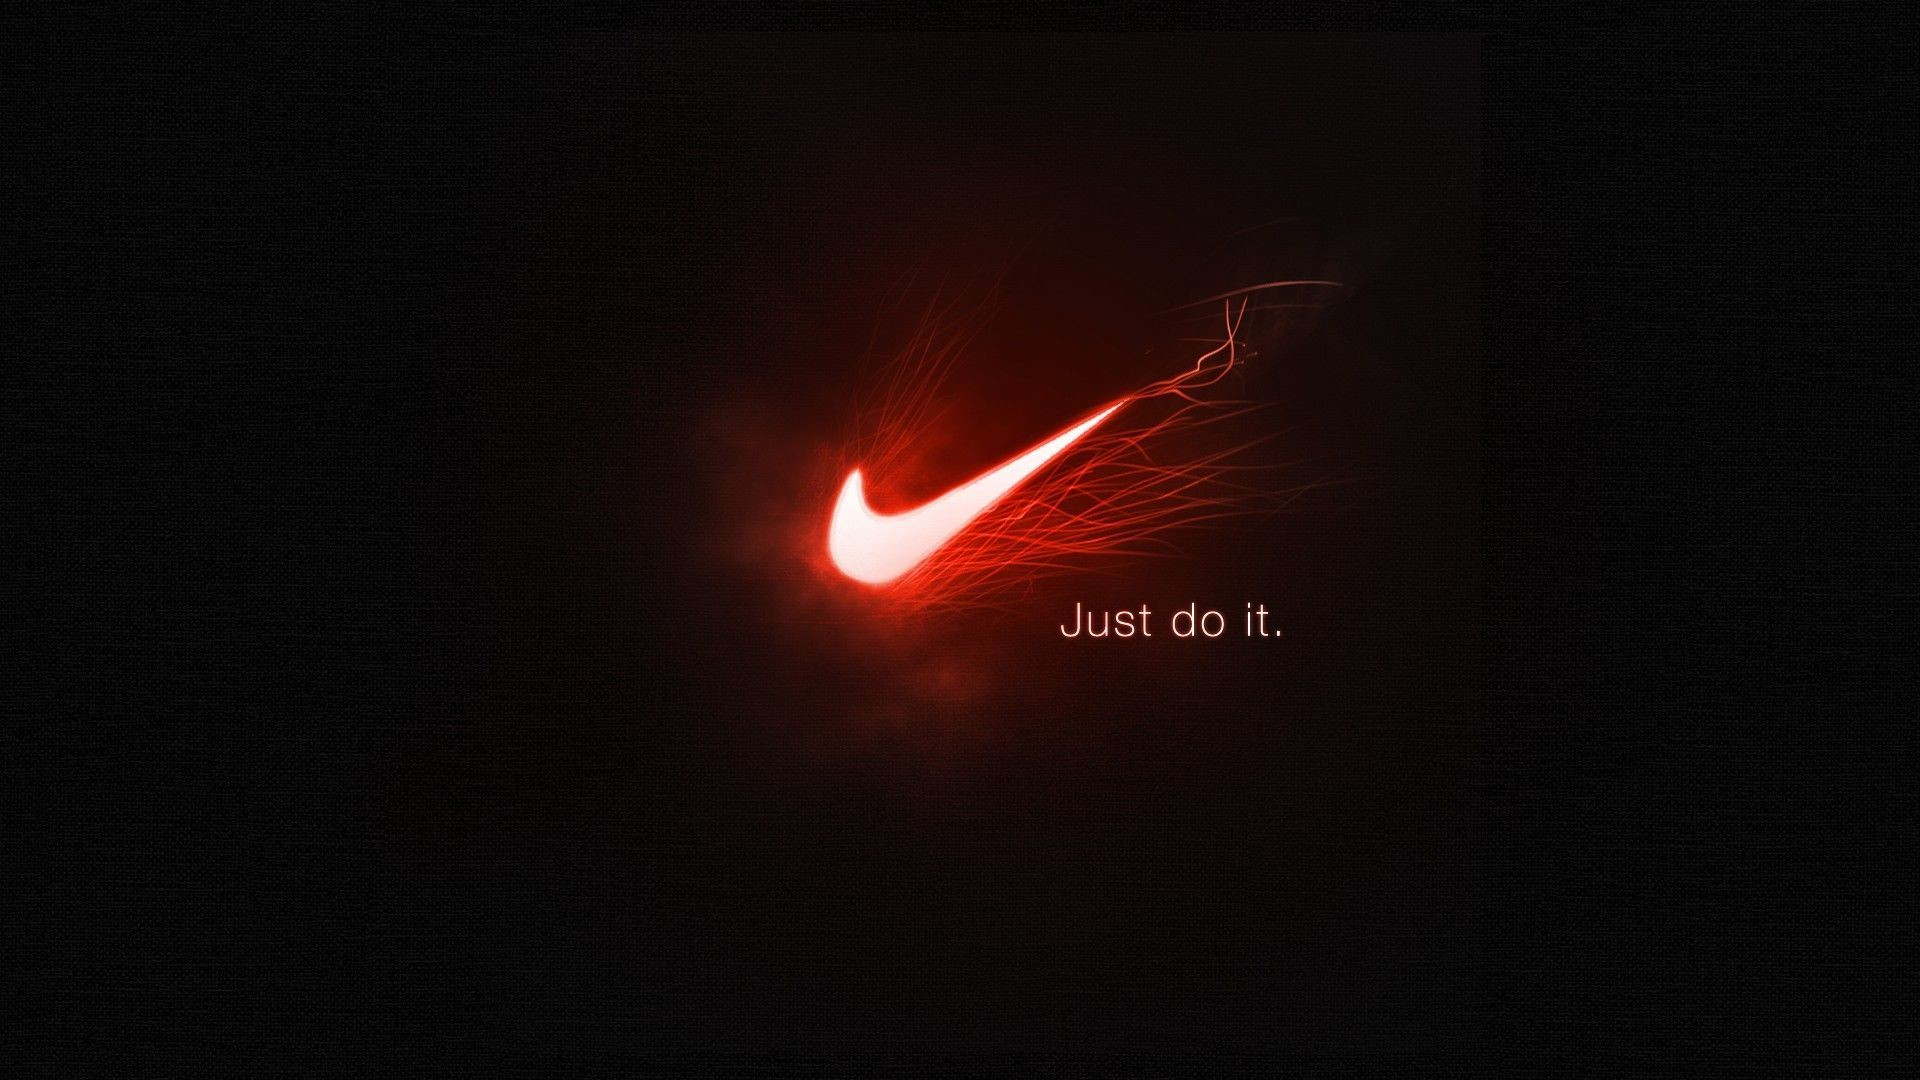 Nike Wallpapers Just Do It – Wallpaper Cave